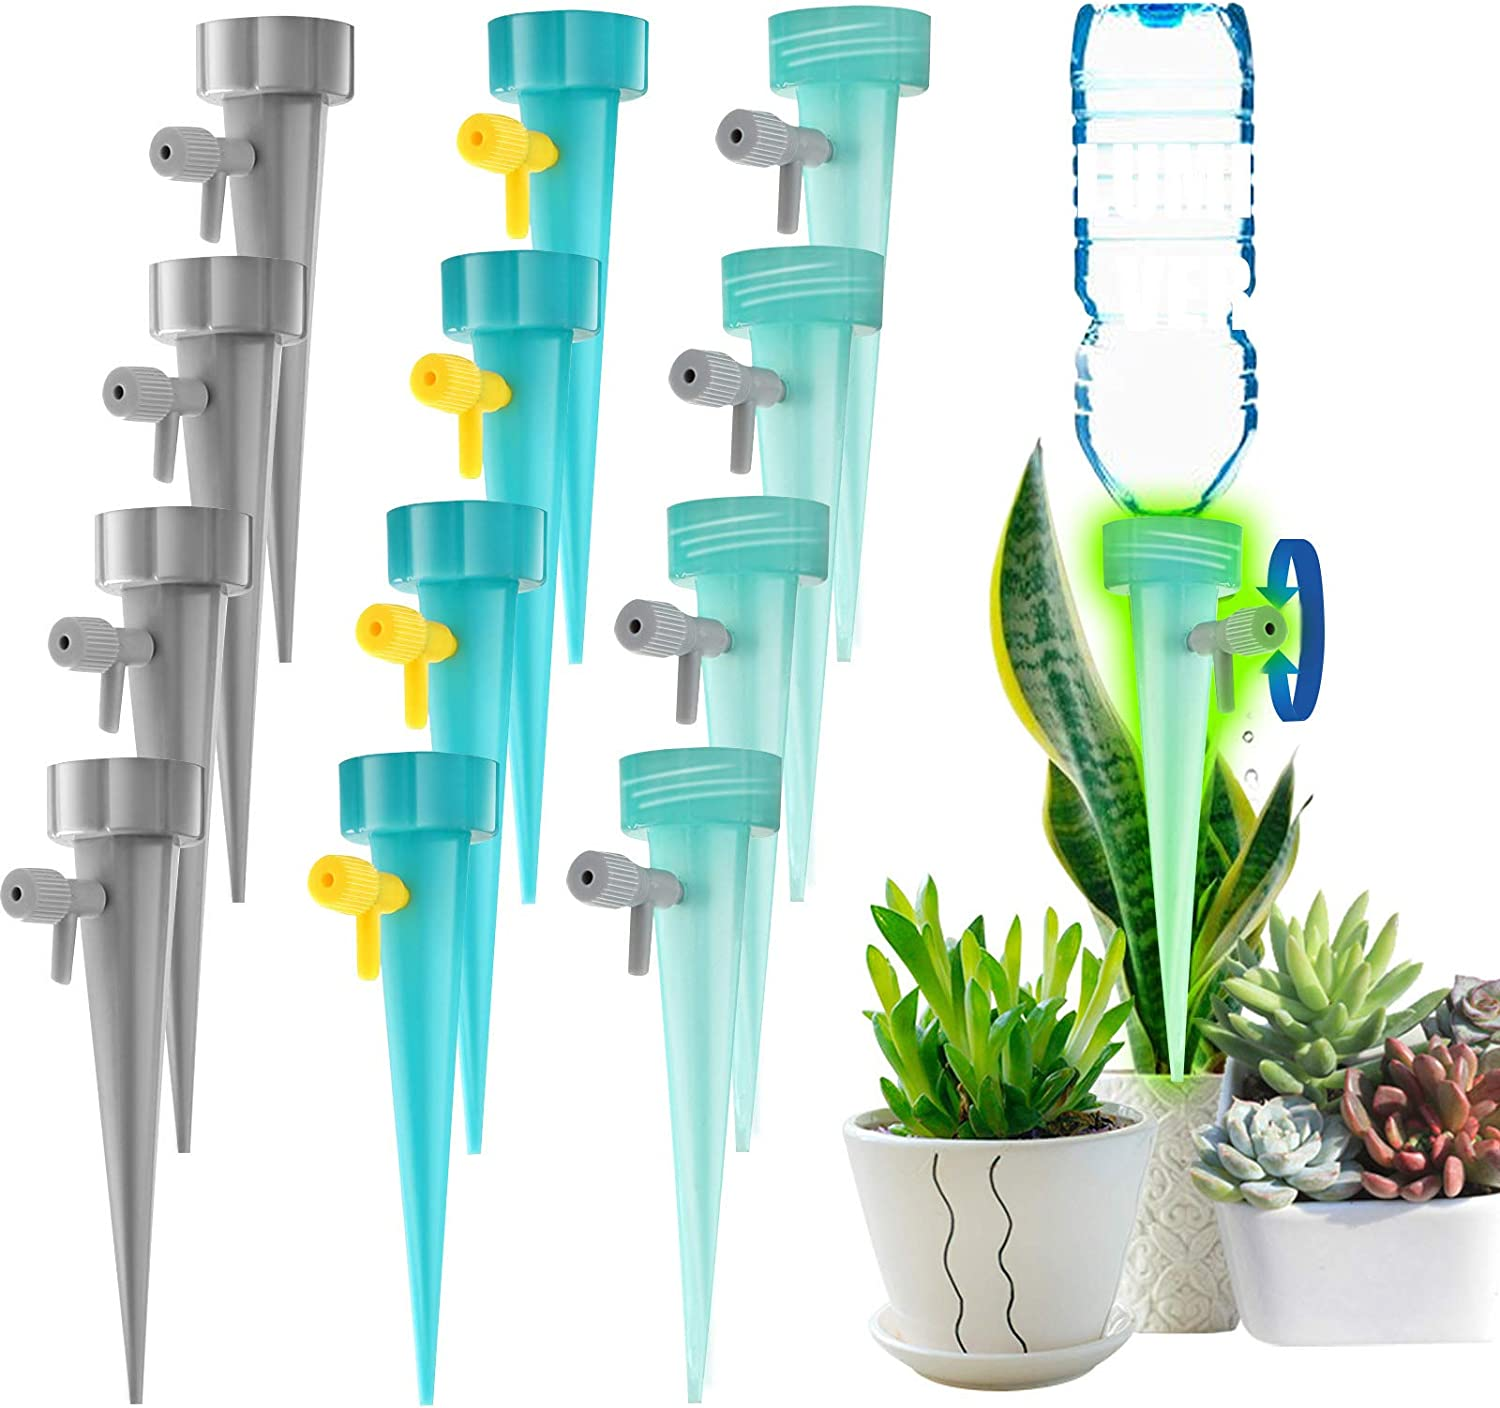 QQCherry Self Watering Spikes,Slow Release Control Valve Switch Automatic Irrigation Watering Drip System,Adjustable Water Volume Drip System for Outdoor and Vacation Plant Watering,12Pack